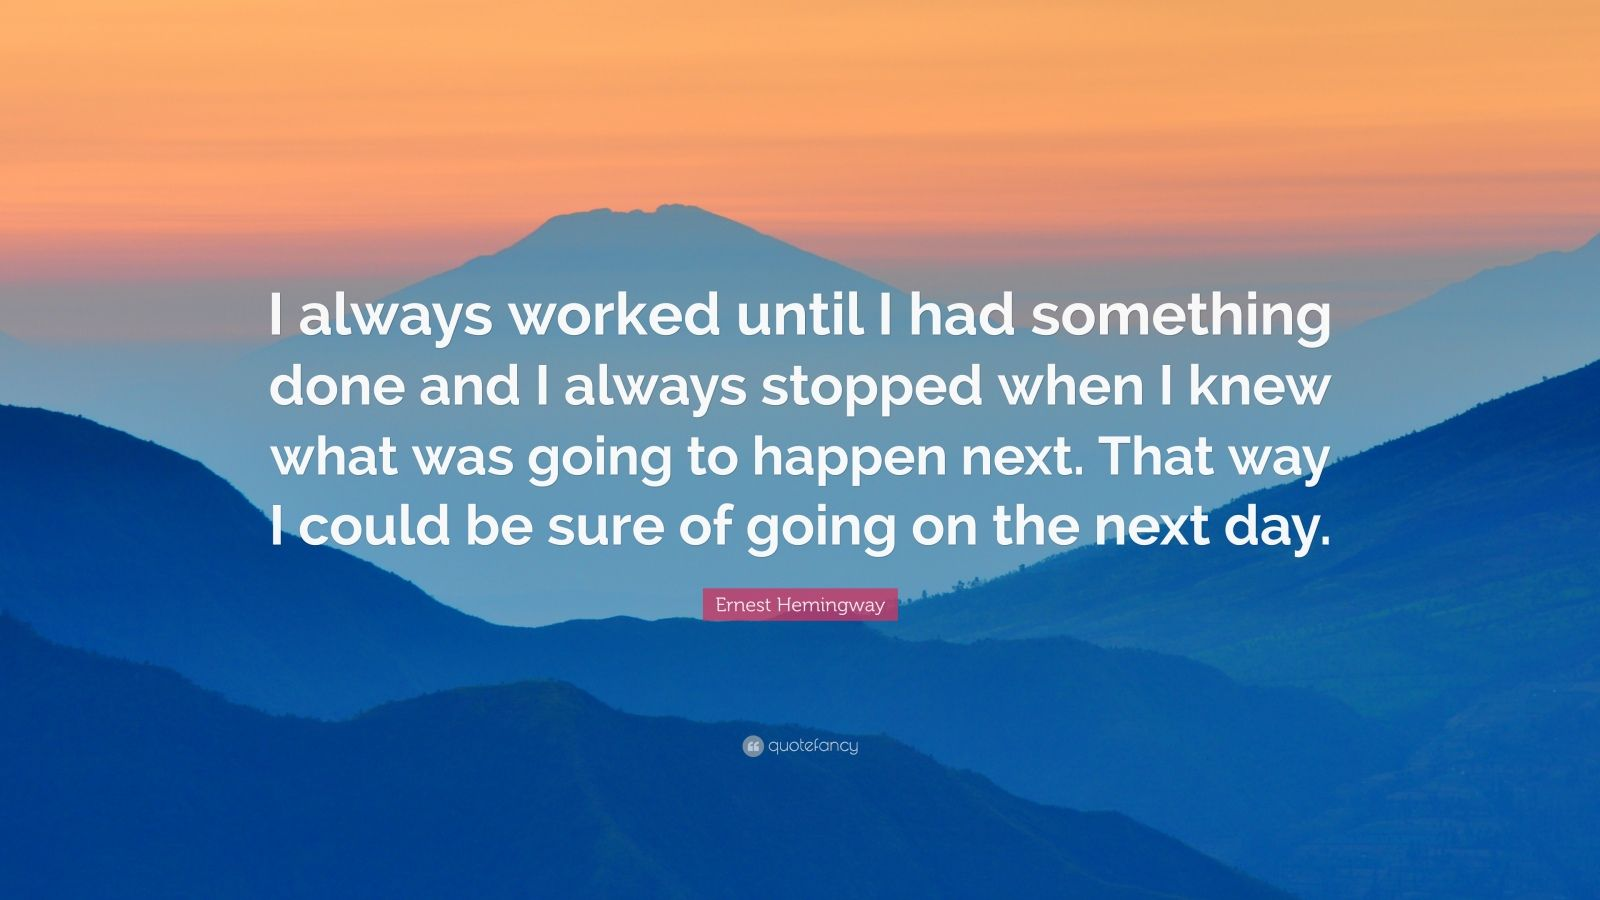 """Ernest Hemingway Quote: """"I always worked until I had something done and I always stopped when I knew what was going to happen next. That way I could be sure of going on the next day."""""""